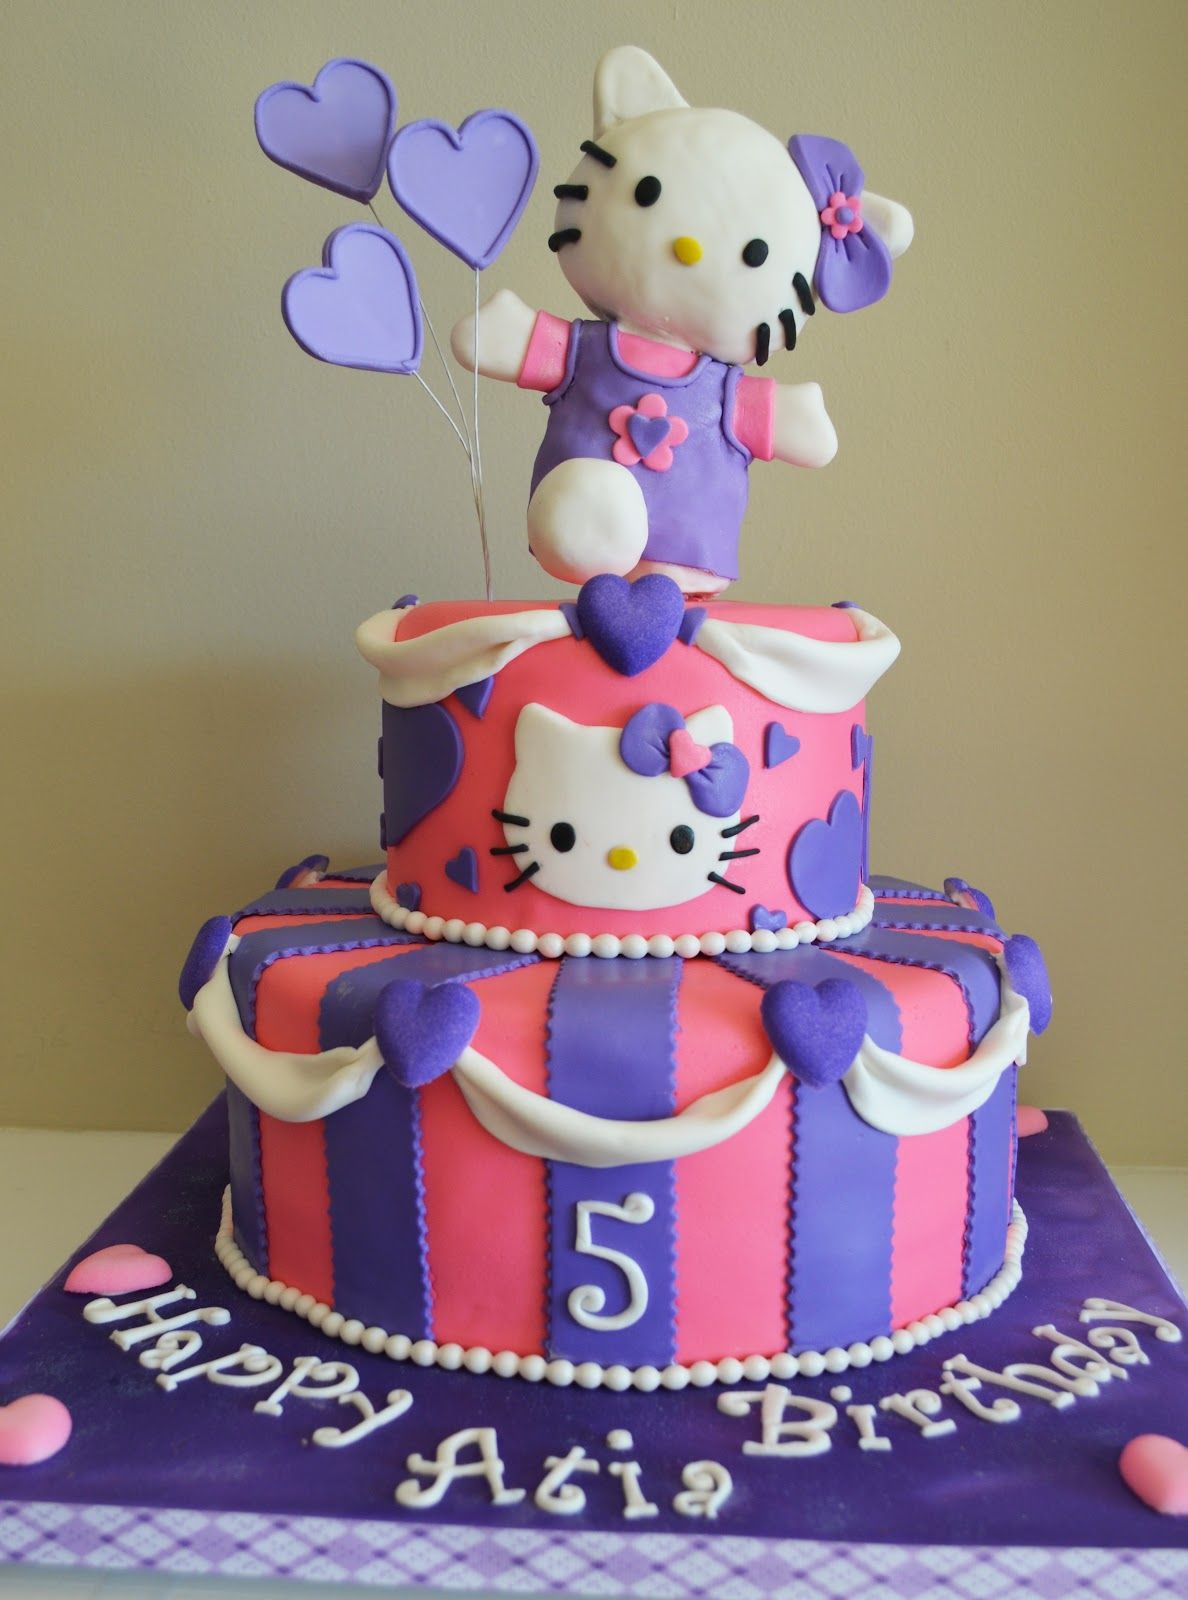 Puppy birthday cake for girls cute hello kitty cake ideas and